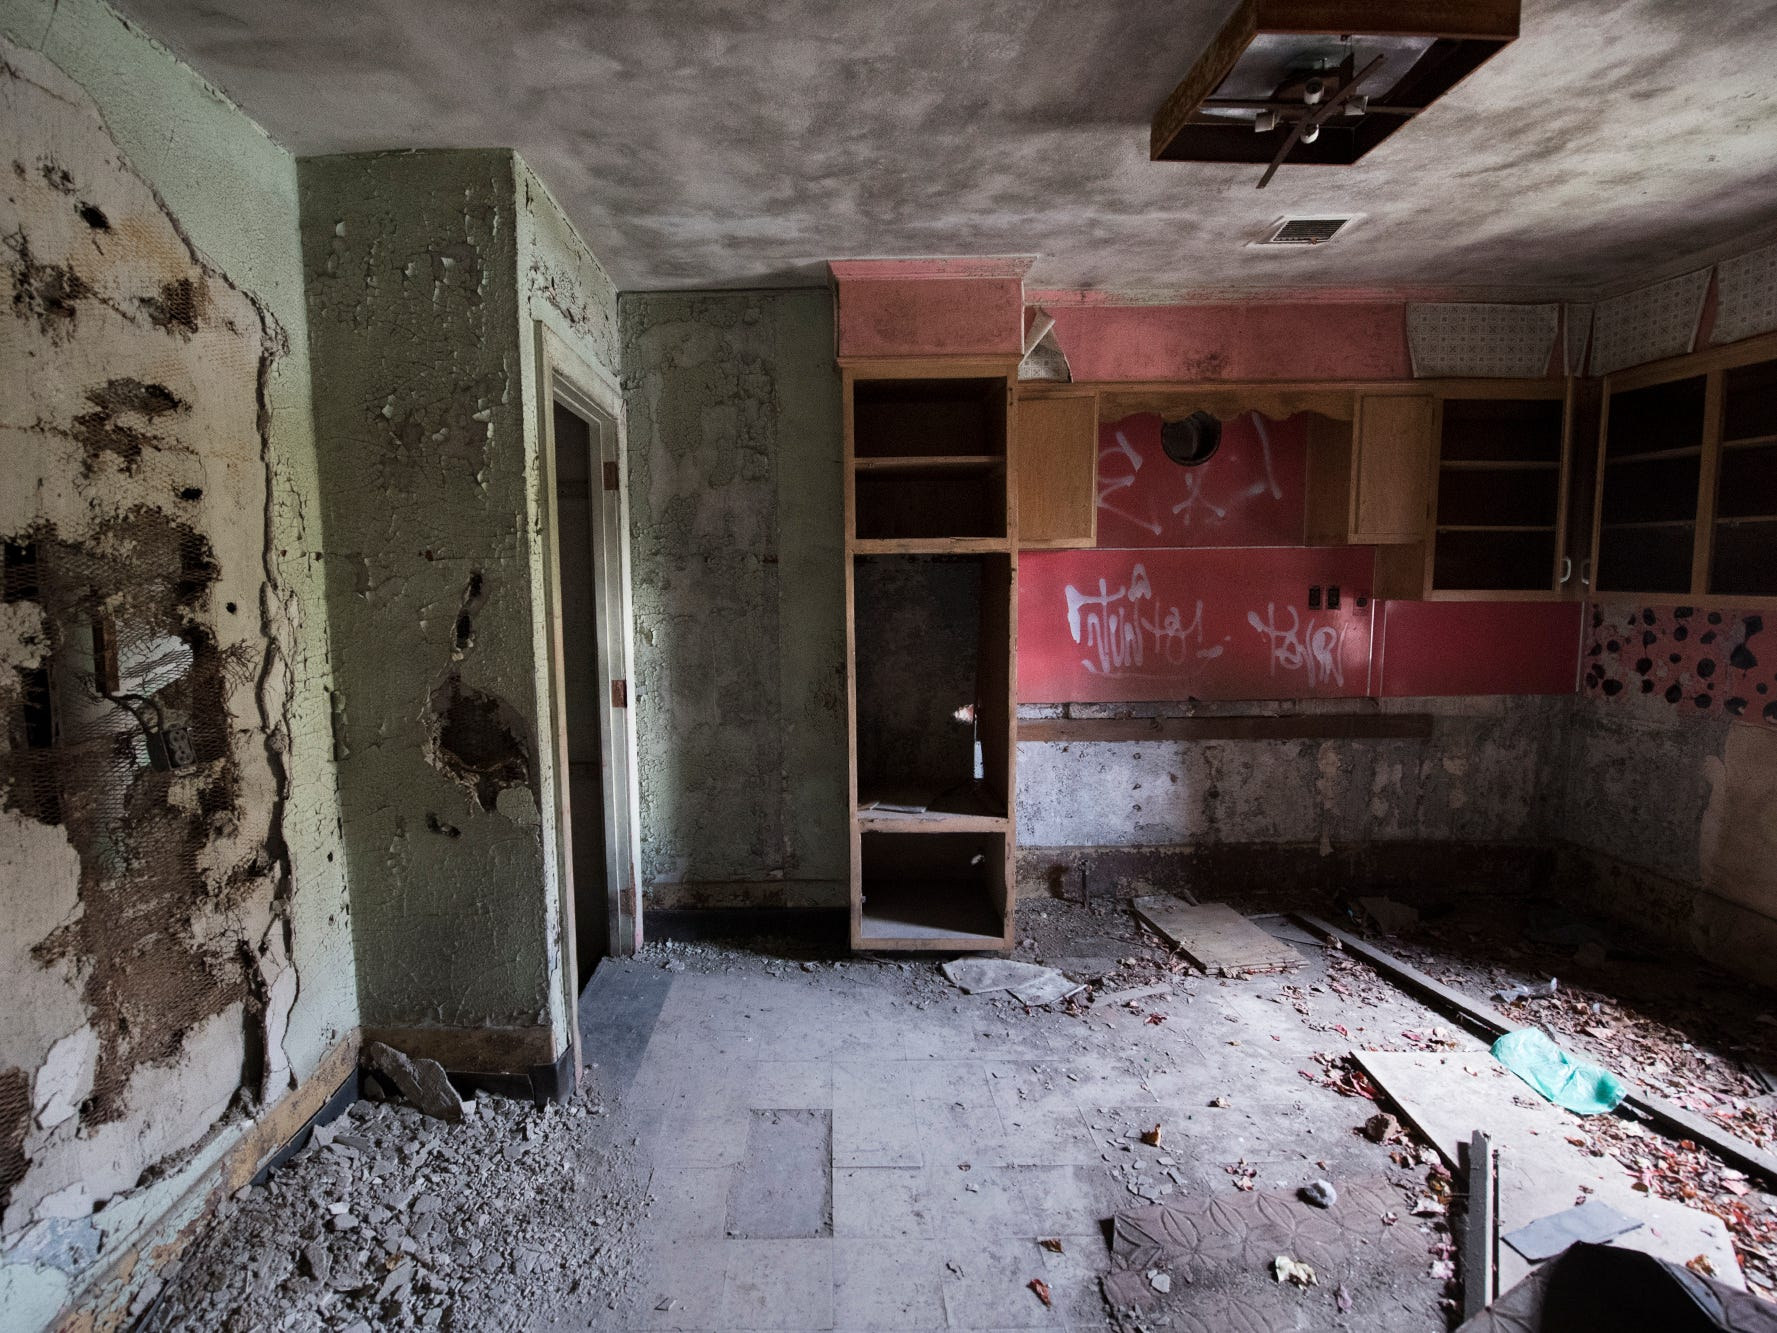 What is left of a kitchen area for staff is seen inside the old York County Prison.